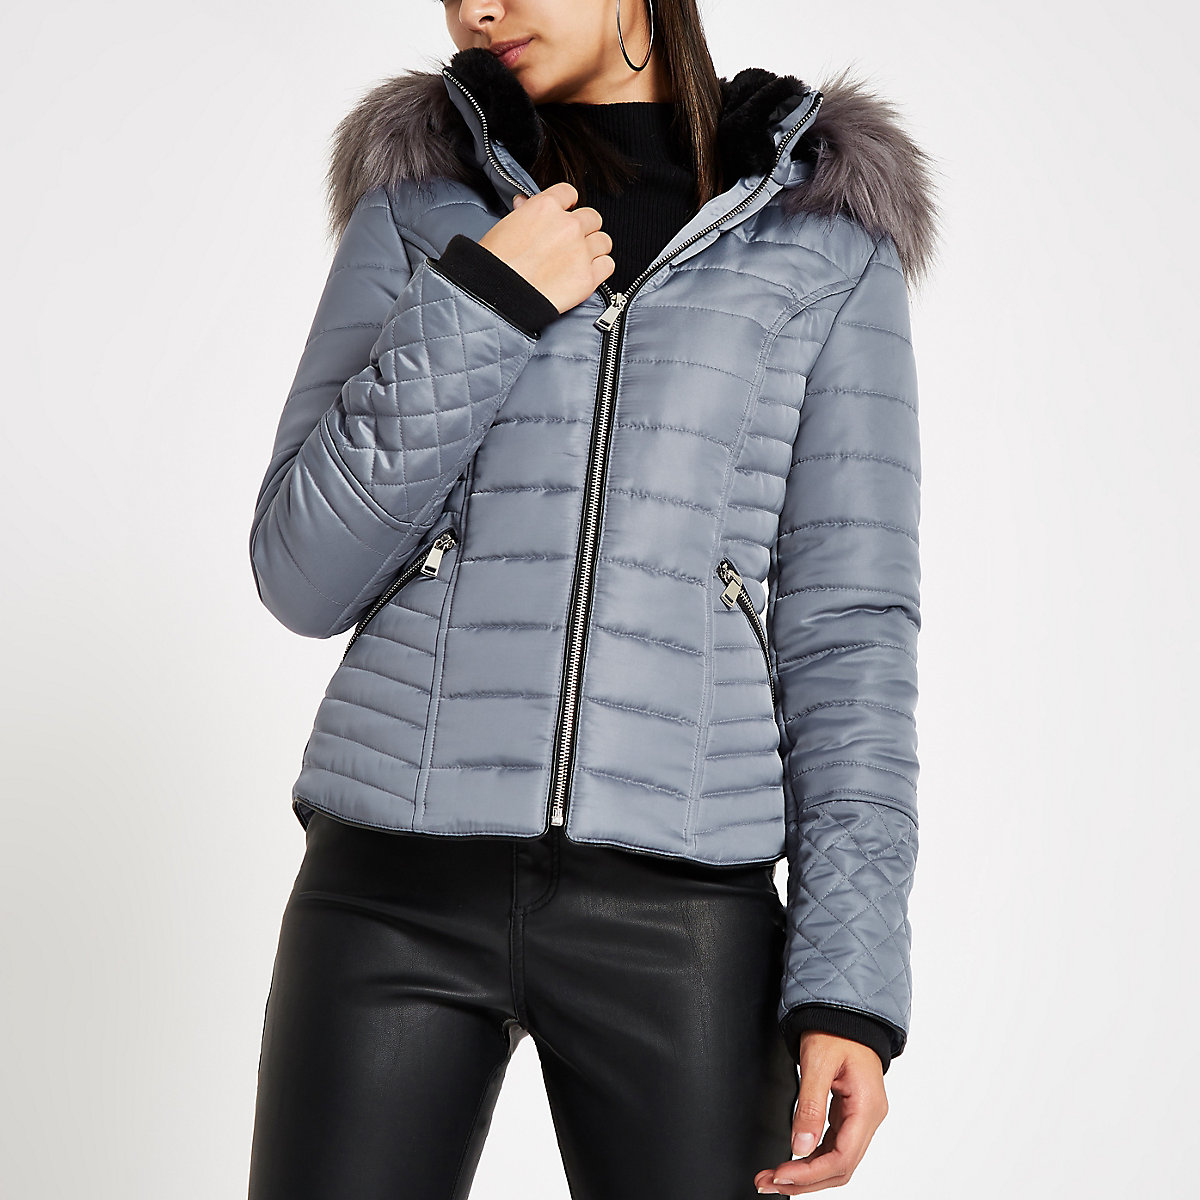 Blue Faux Fur Hood Long Sleeve Padded Jacket Jackets Coats